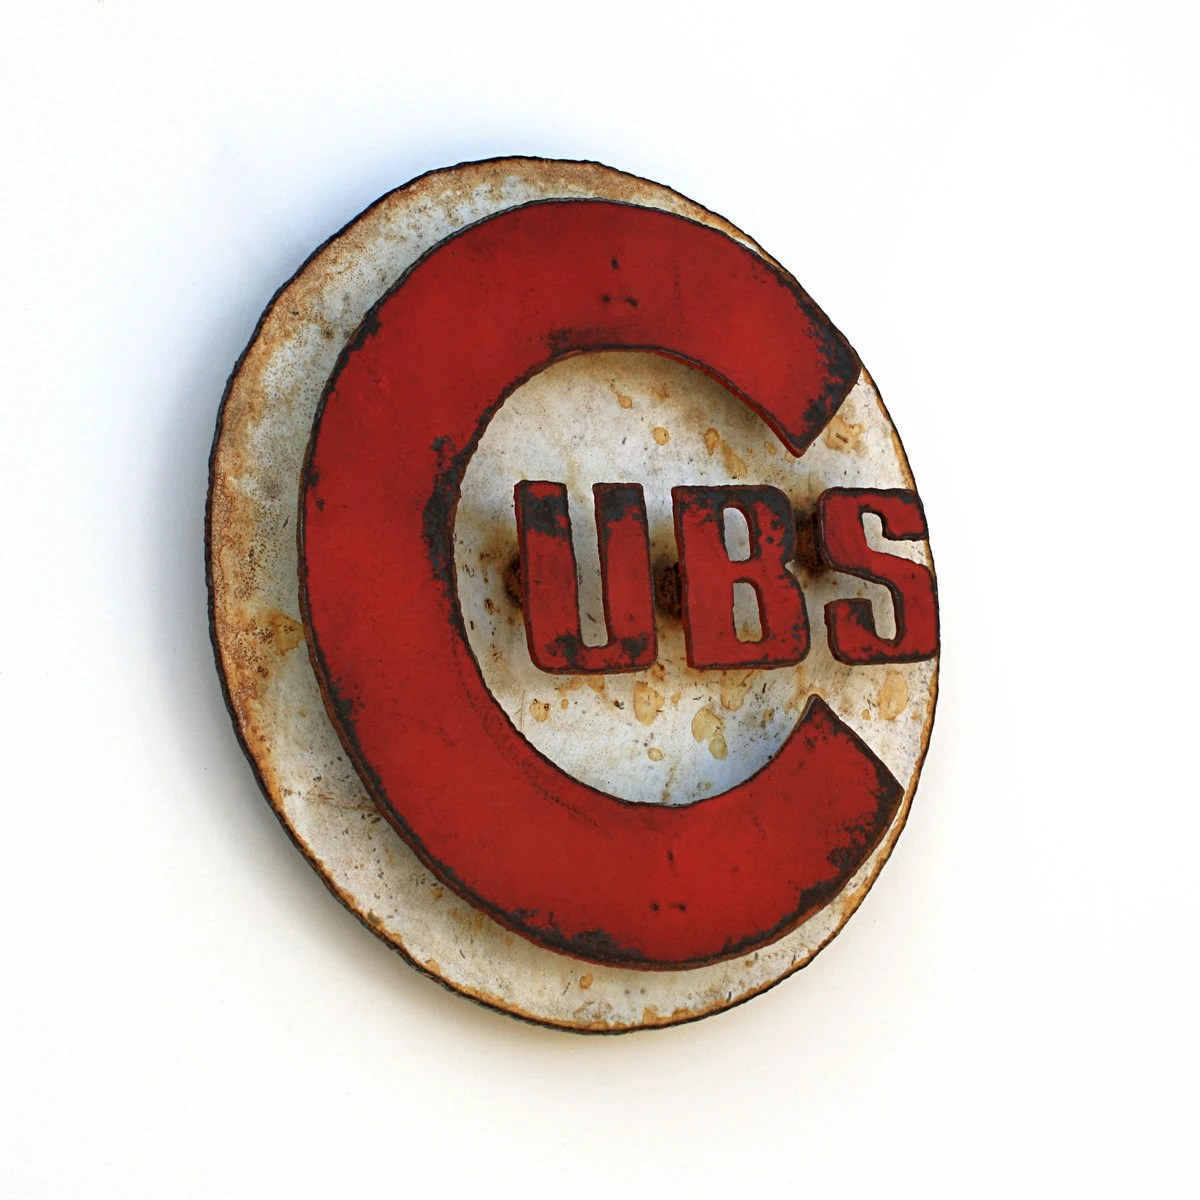 "Chicago CUBS wall art logo 12"" diameter - white and red with rust patina - indoor outdoor"